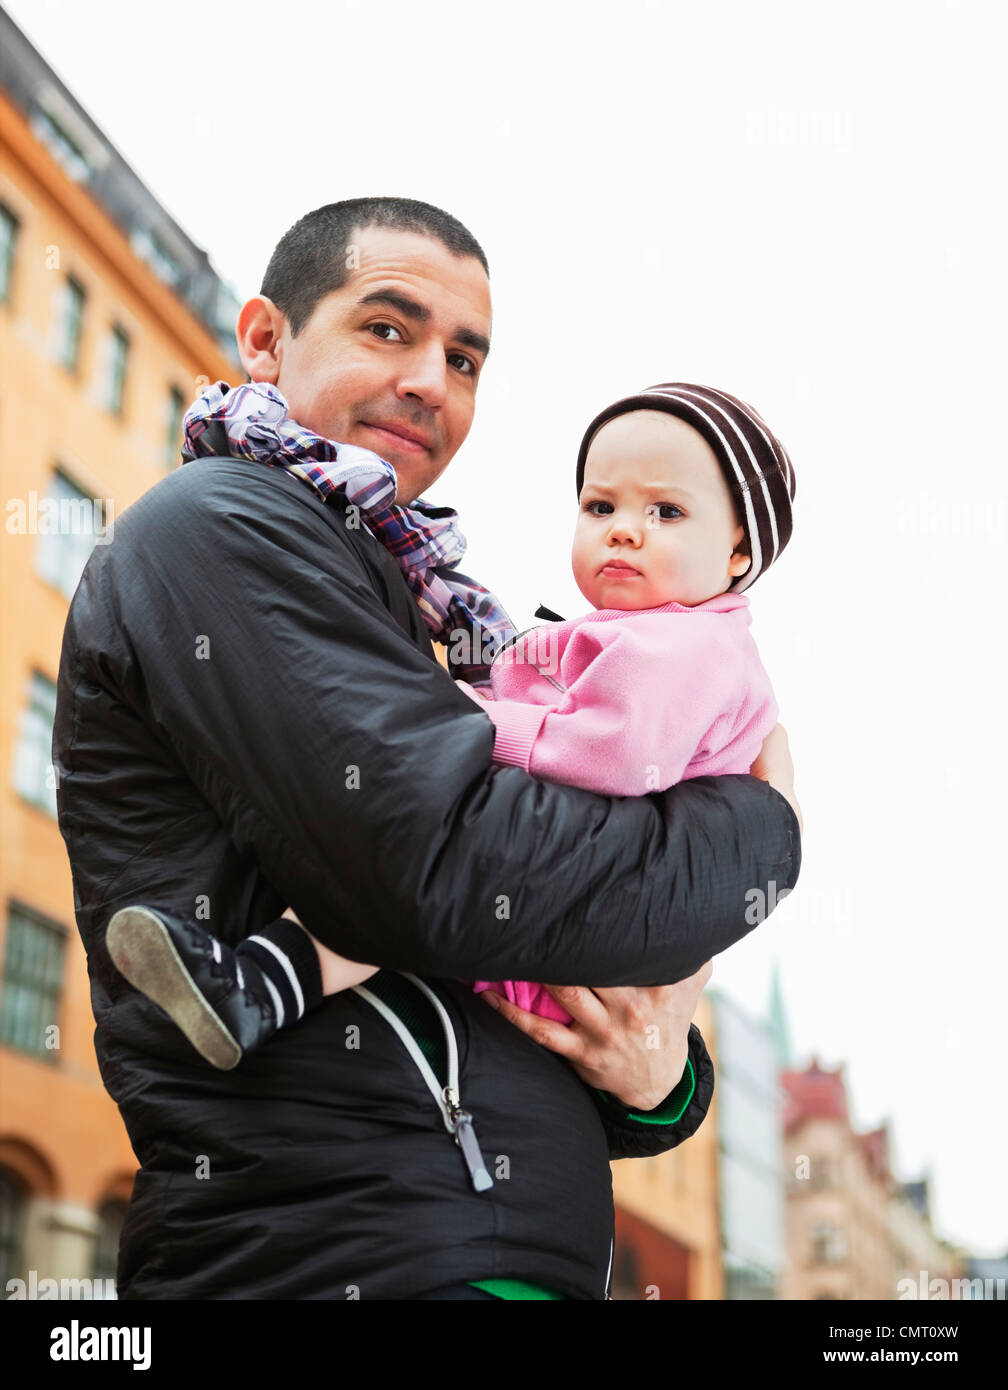 Father holding his daughter (0-11 months) - Stock Image